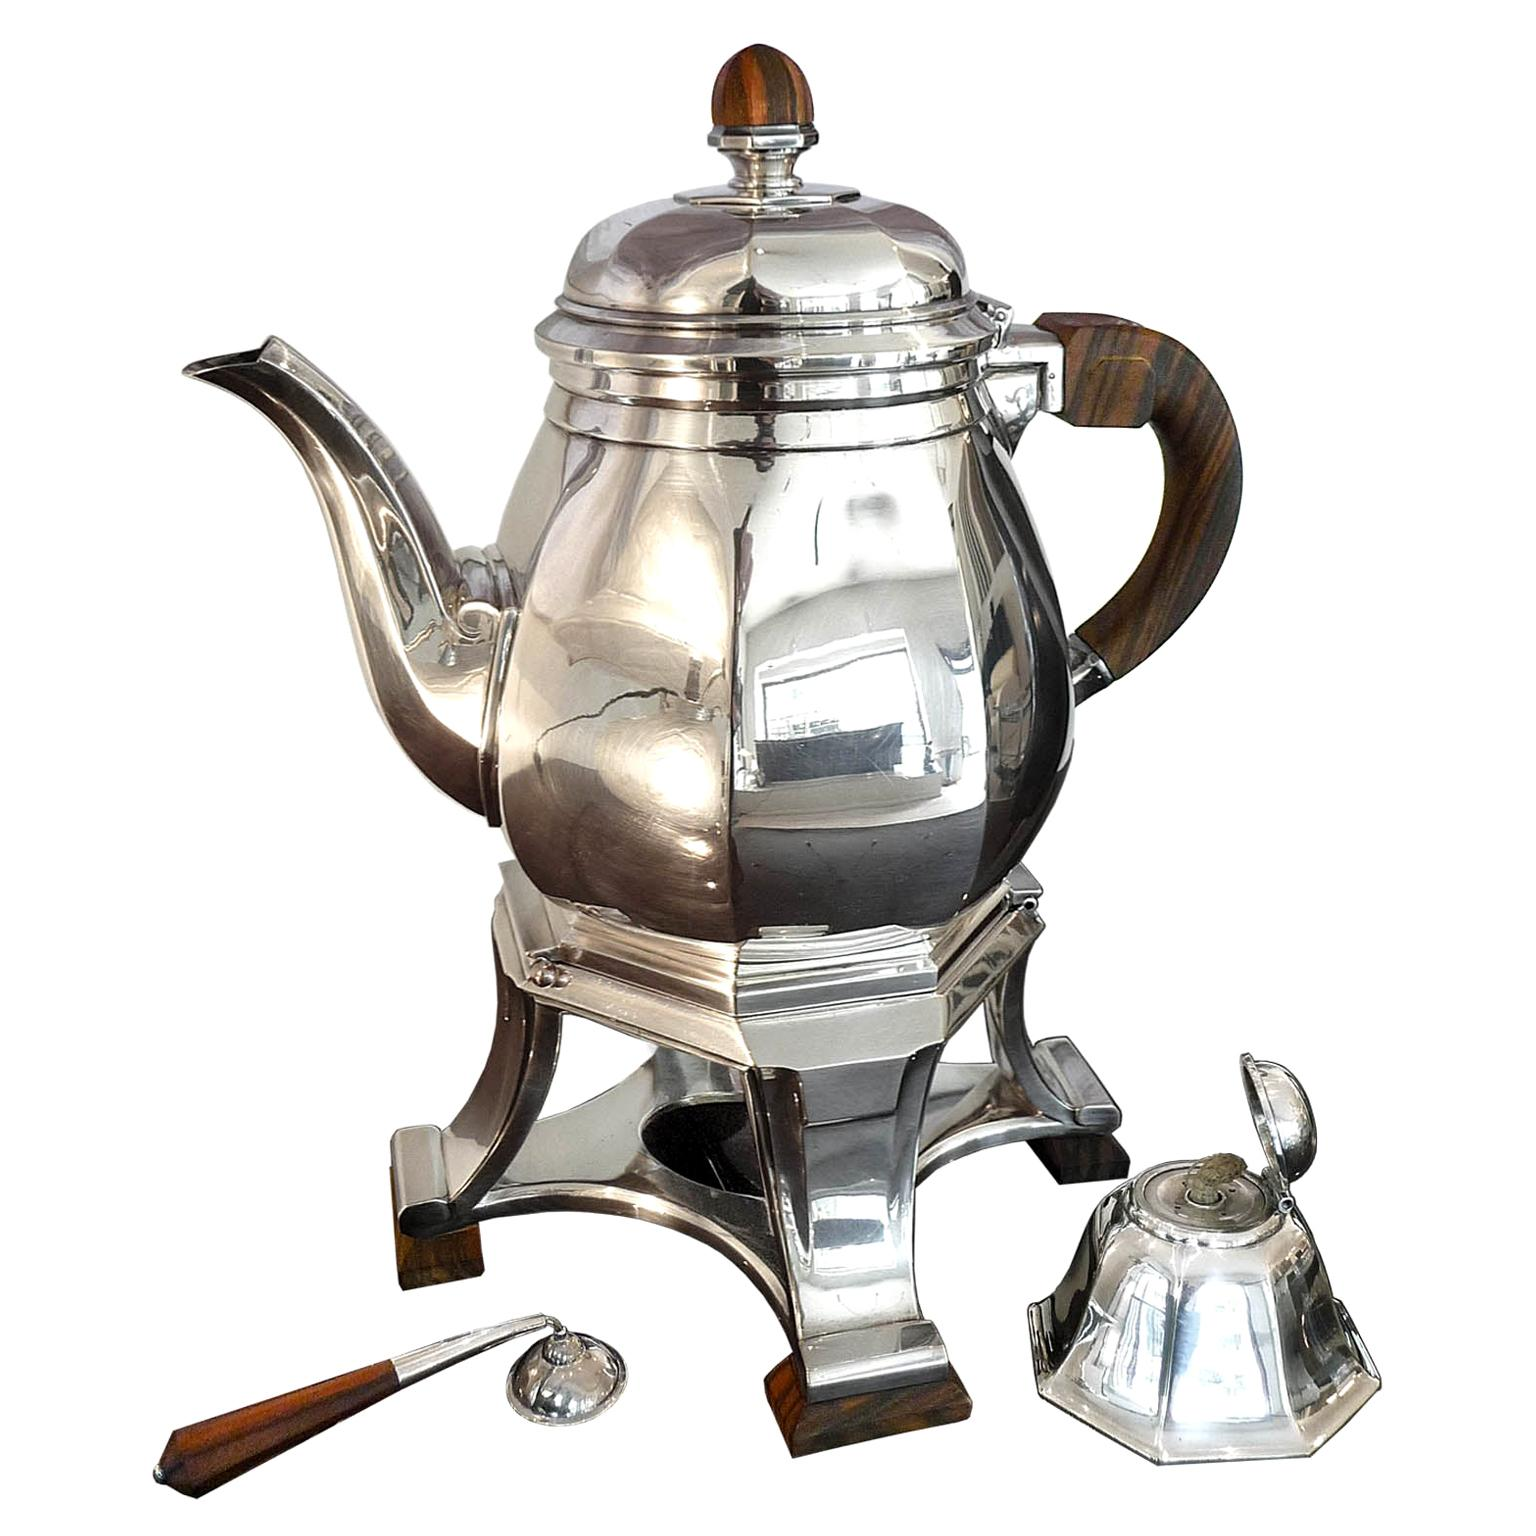 Art Deco Silvered Teapot and Warmer by Gustave Keller, Paris, 1930s